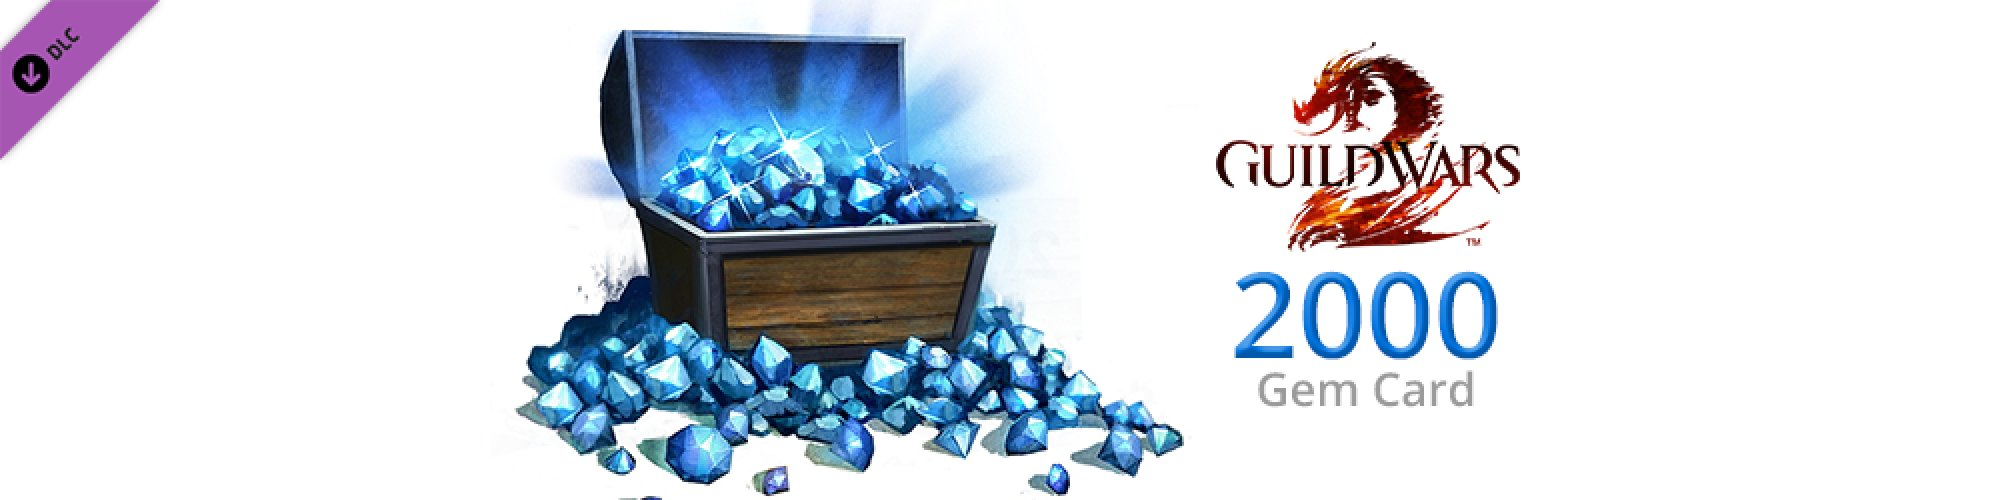 Guild Wars 2 2000 Gem Card banner